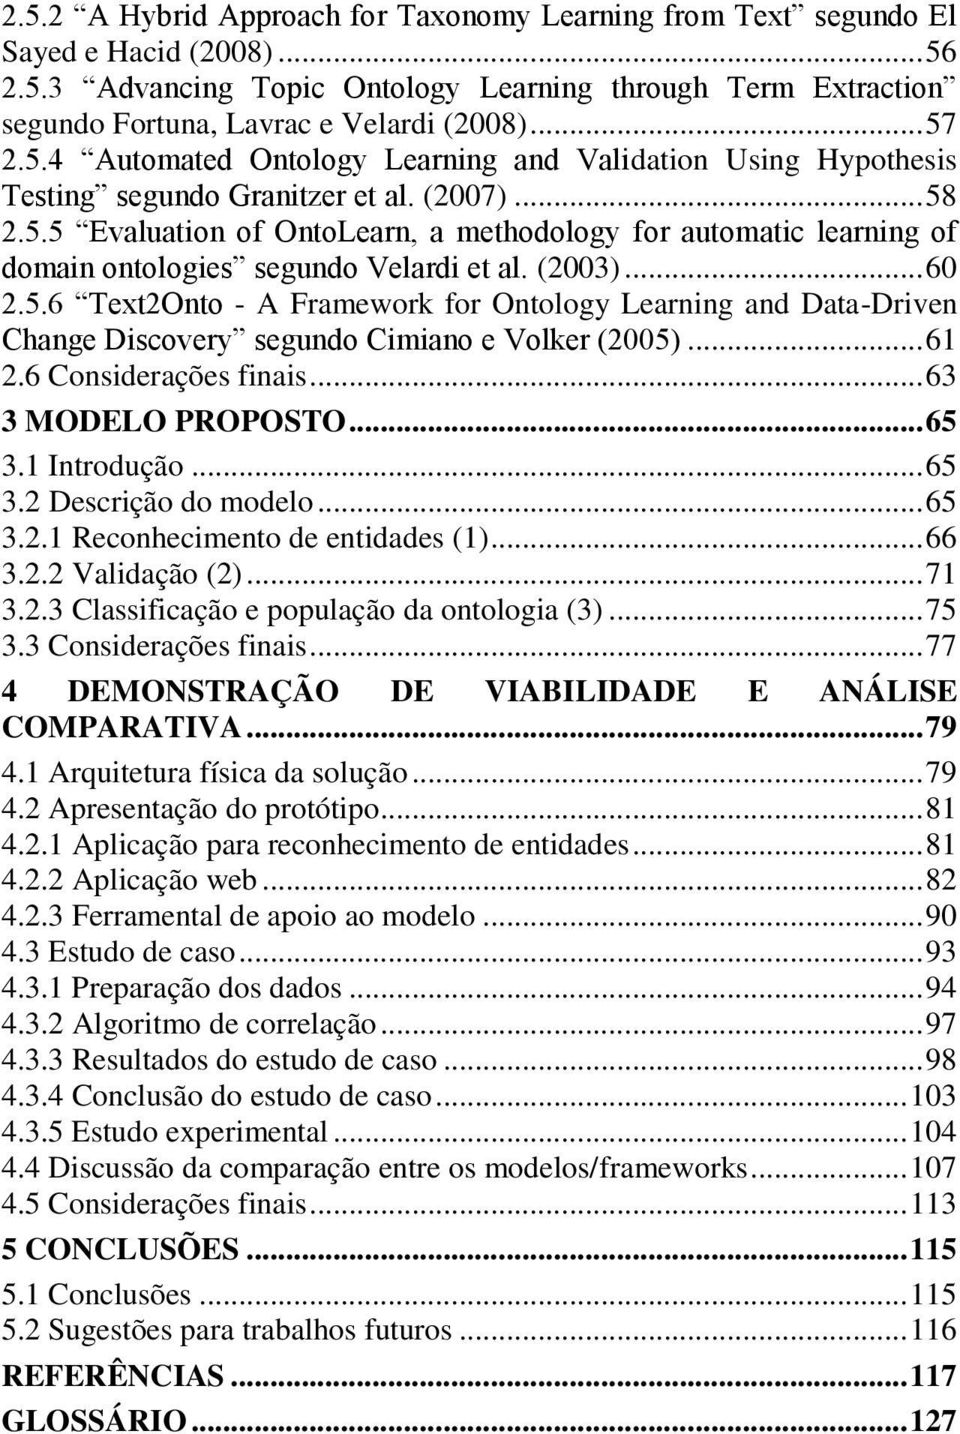 (2003)... 60 2.5.6 Text2Onto - A Framework for Ontology Learning and Data-Driven Change Discovery segundo Cimiano e Volker (2005)... 61 2.6 Considerações finais... 63 3 MODELO PROPOSTO... 65 3.